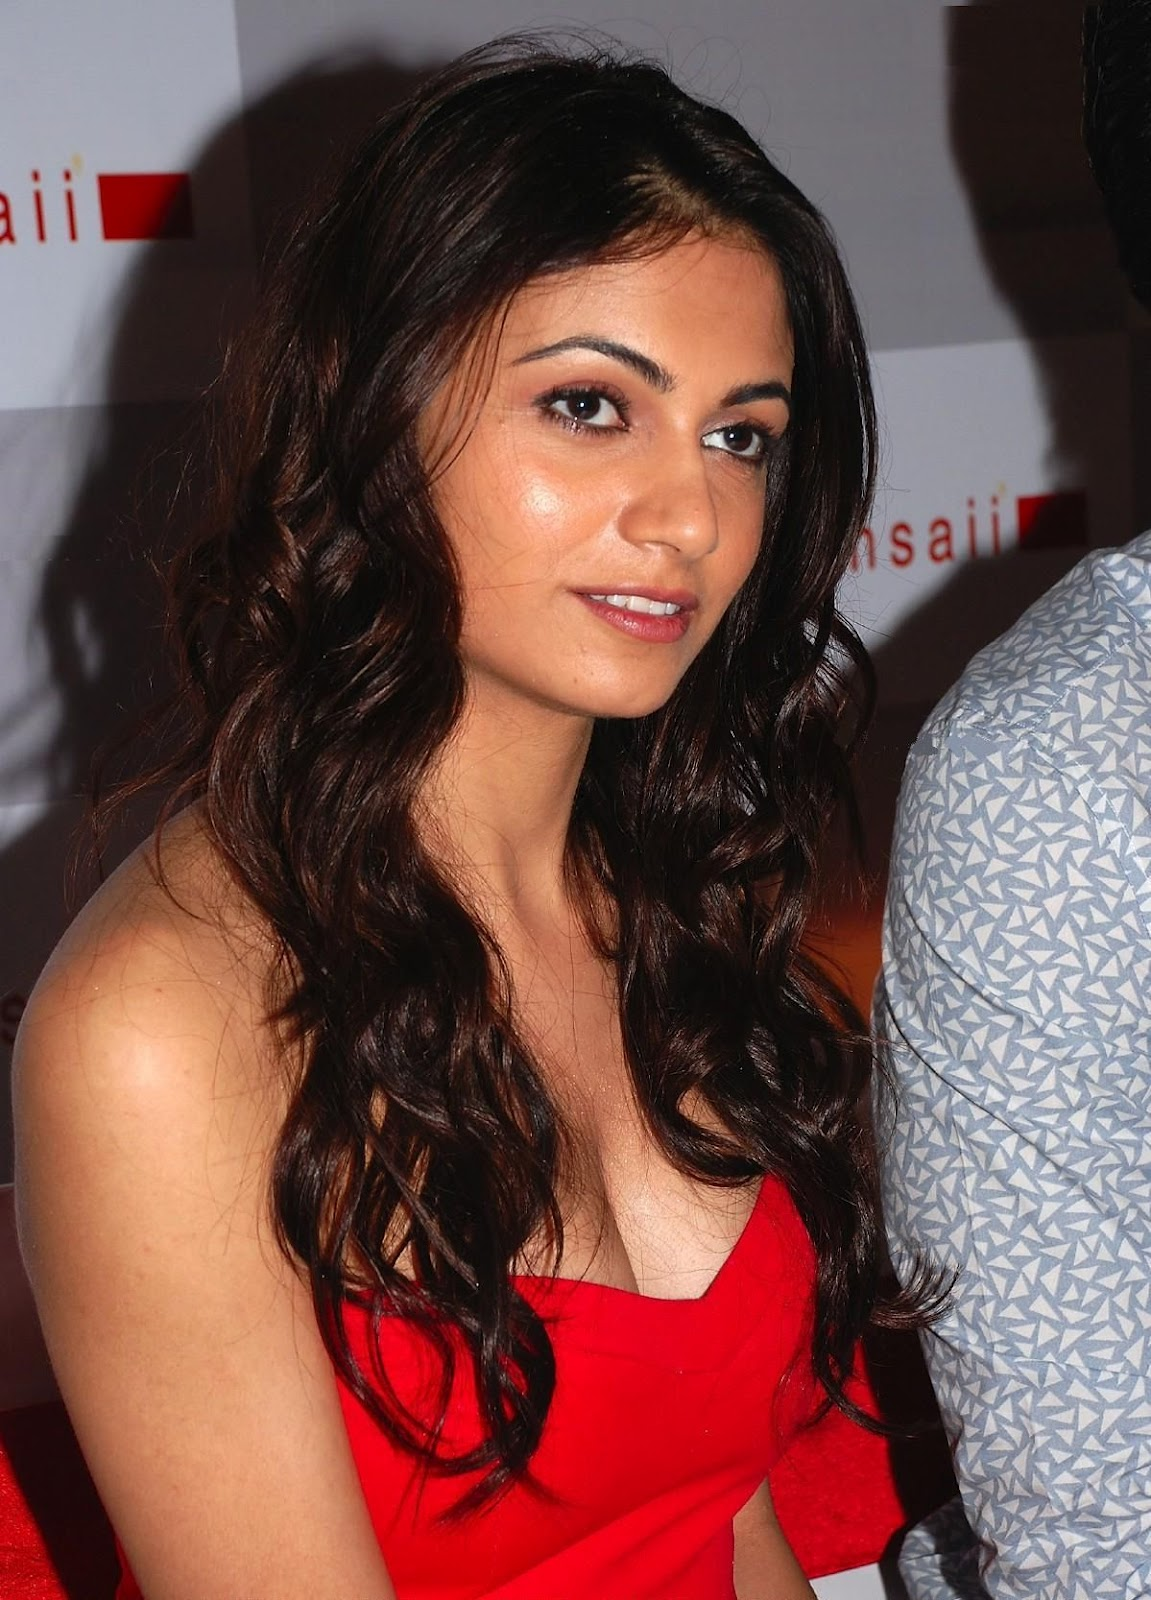 High Quality Bollywood Celebrity Pictures Simran kaur